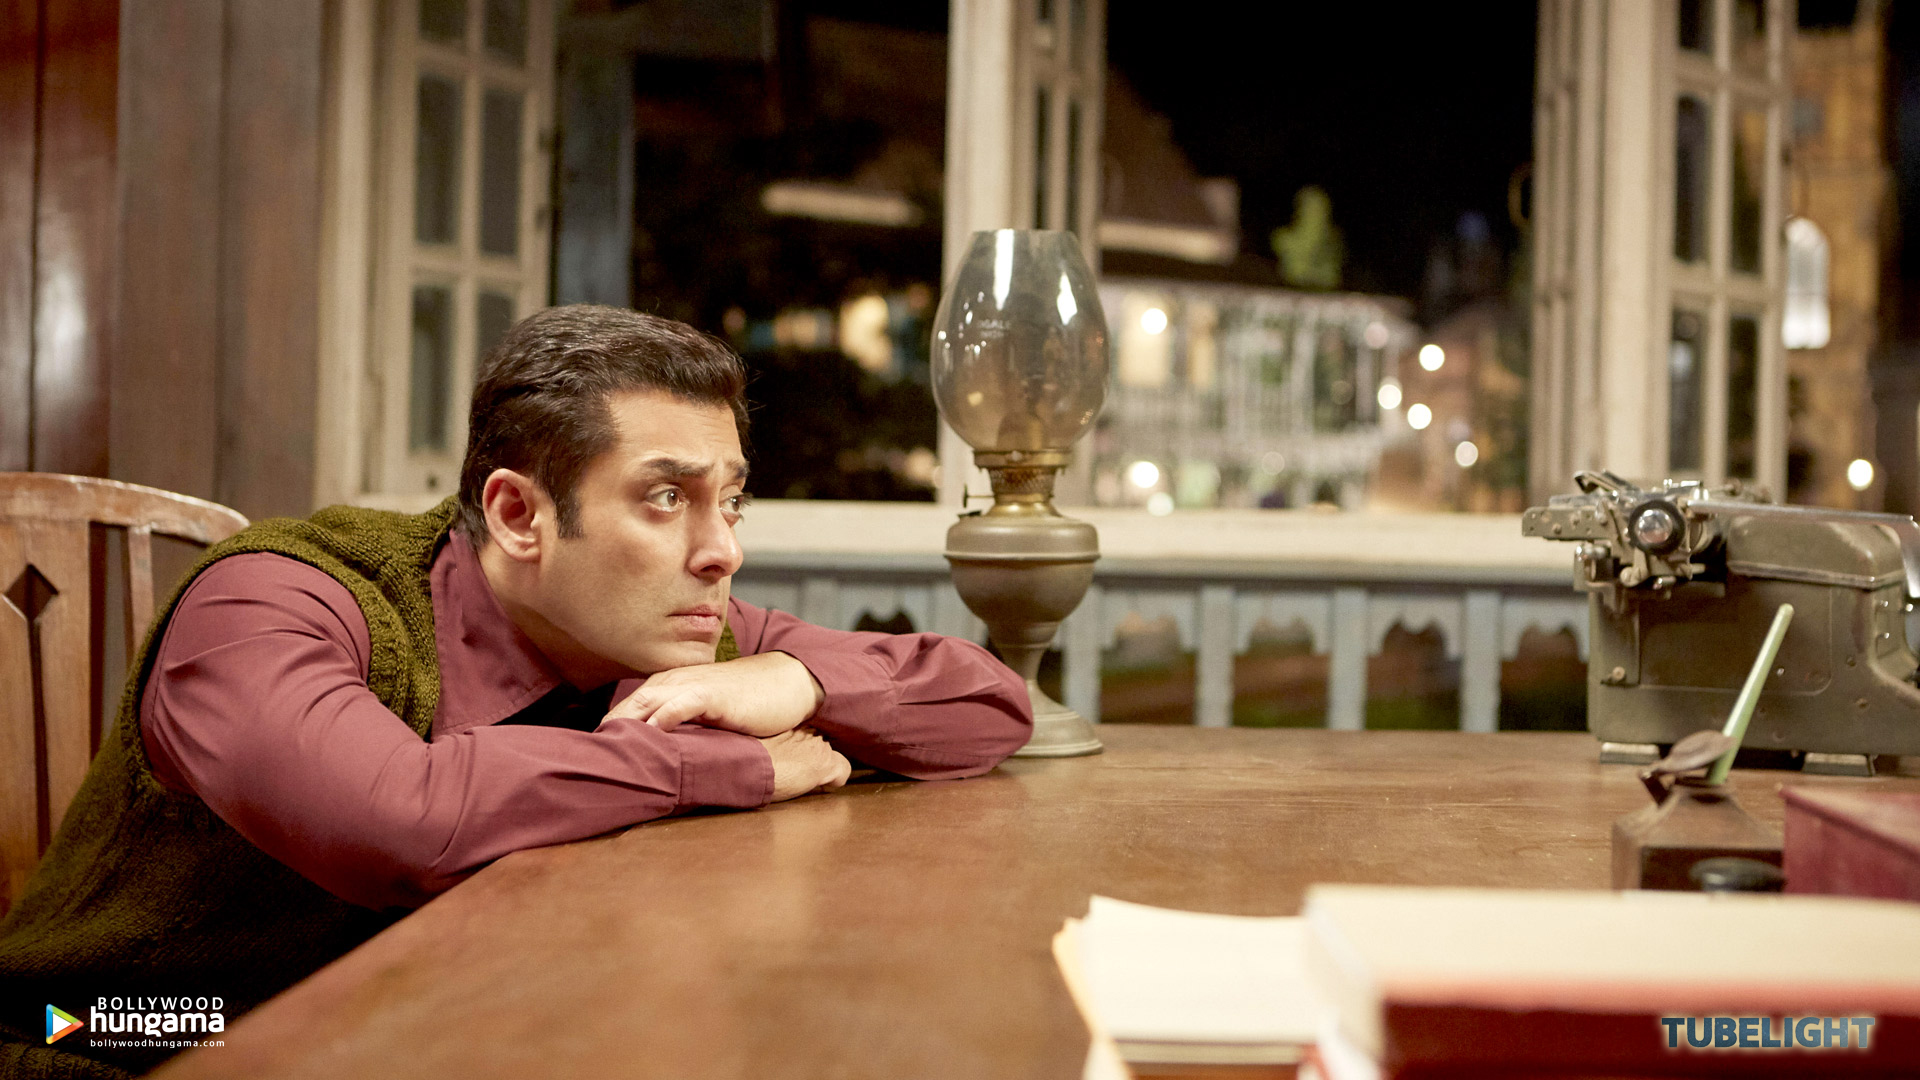 Tubelight 2017 Wallpapers Tublight 111 Bollywood Hungama